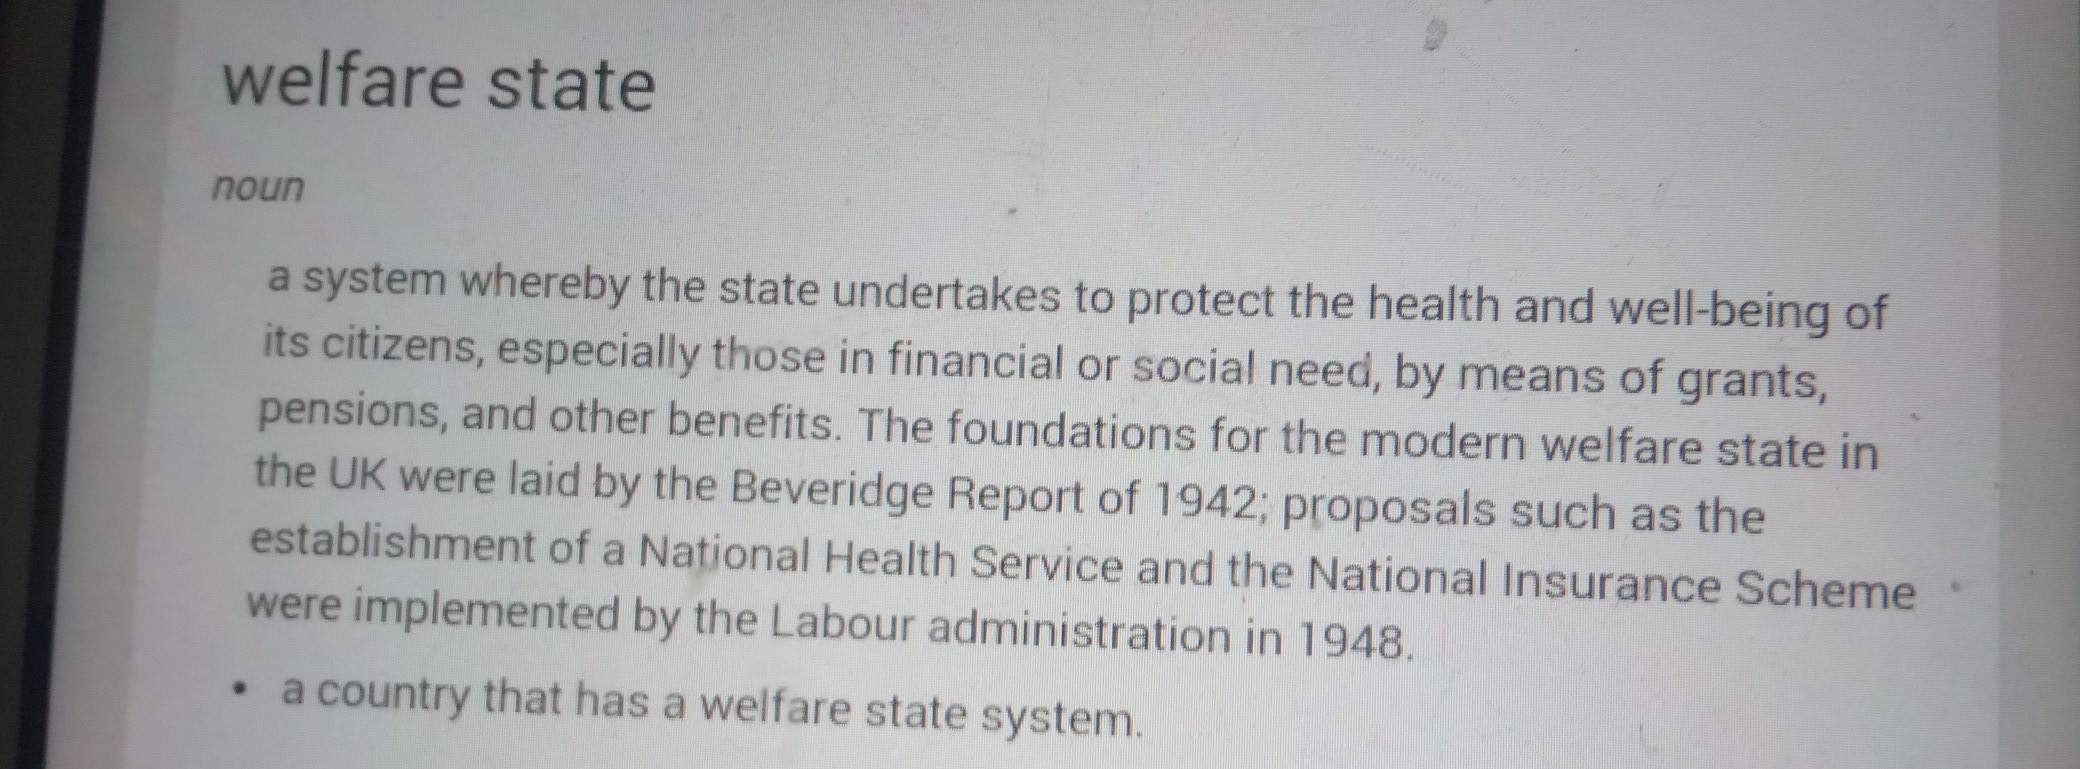 What is the meaning of welfare state? Make a comparison